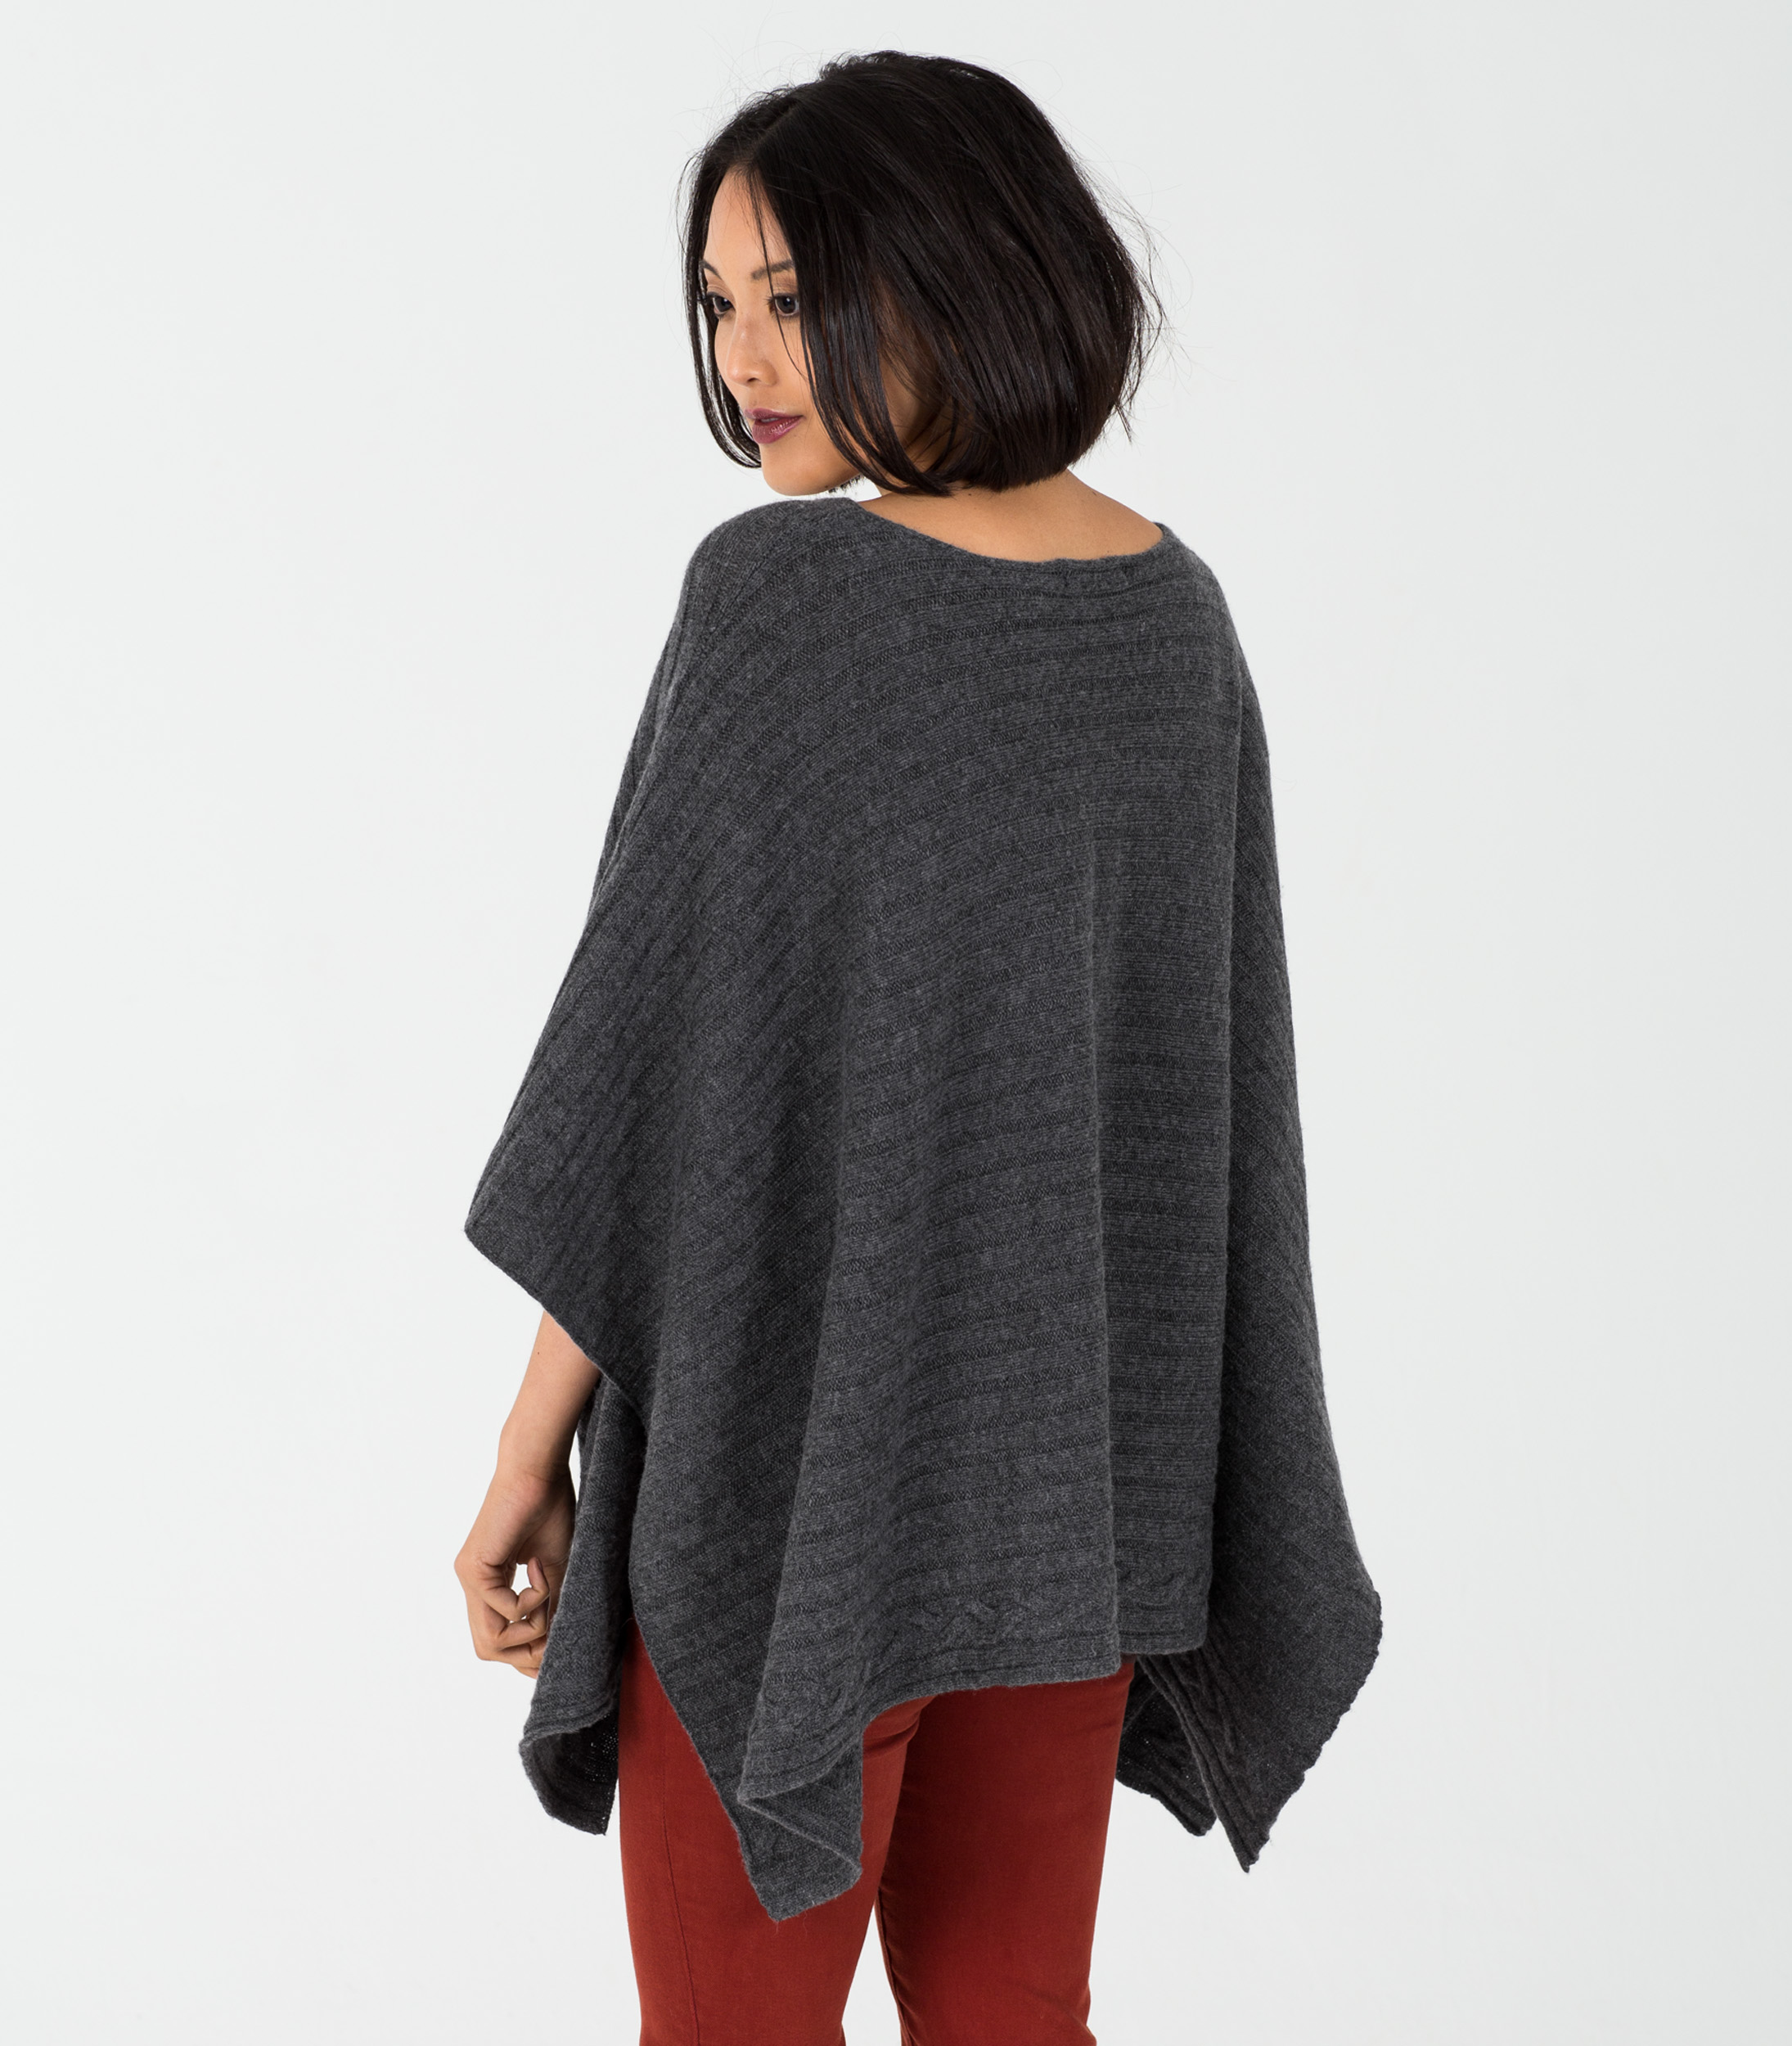 A well-chosen cape or poncho can add an element of luxury to your outfit. At Neiman Marcus, we offer a assortment of fine women's capes and ponchos in a variety of trendy designs.